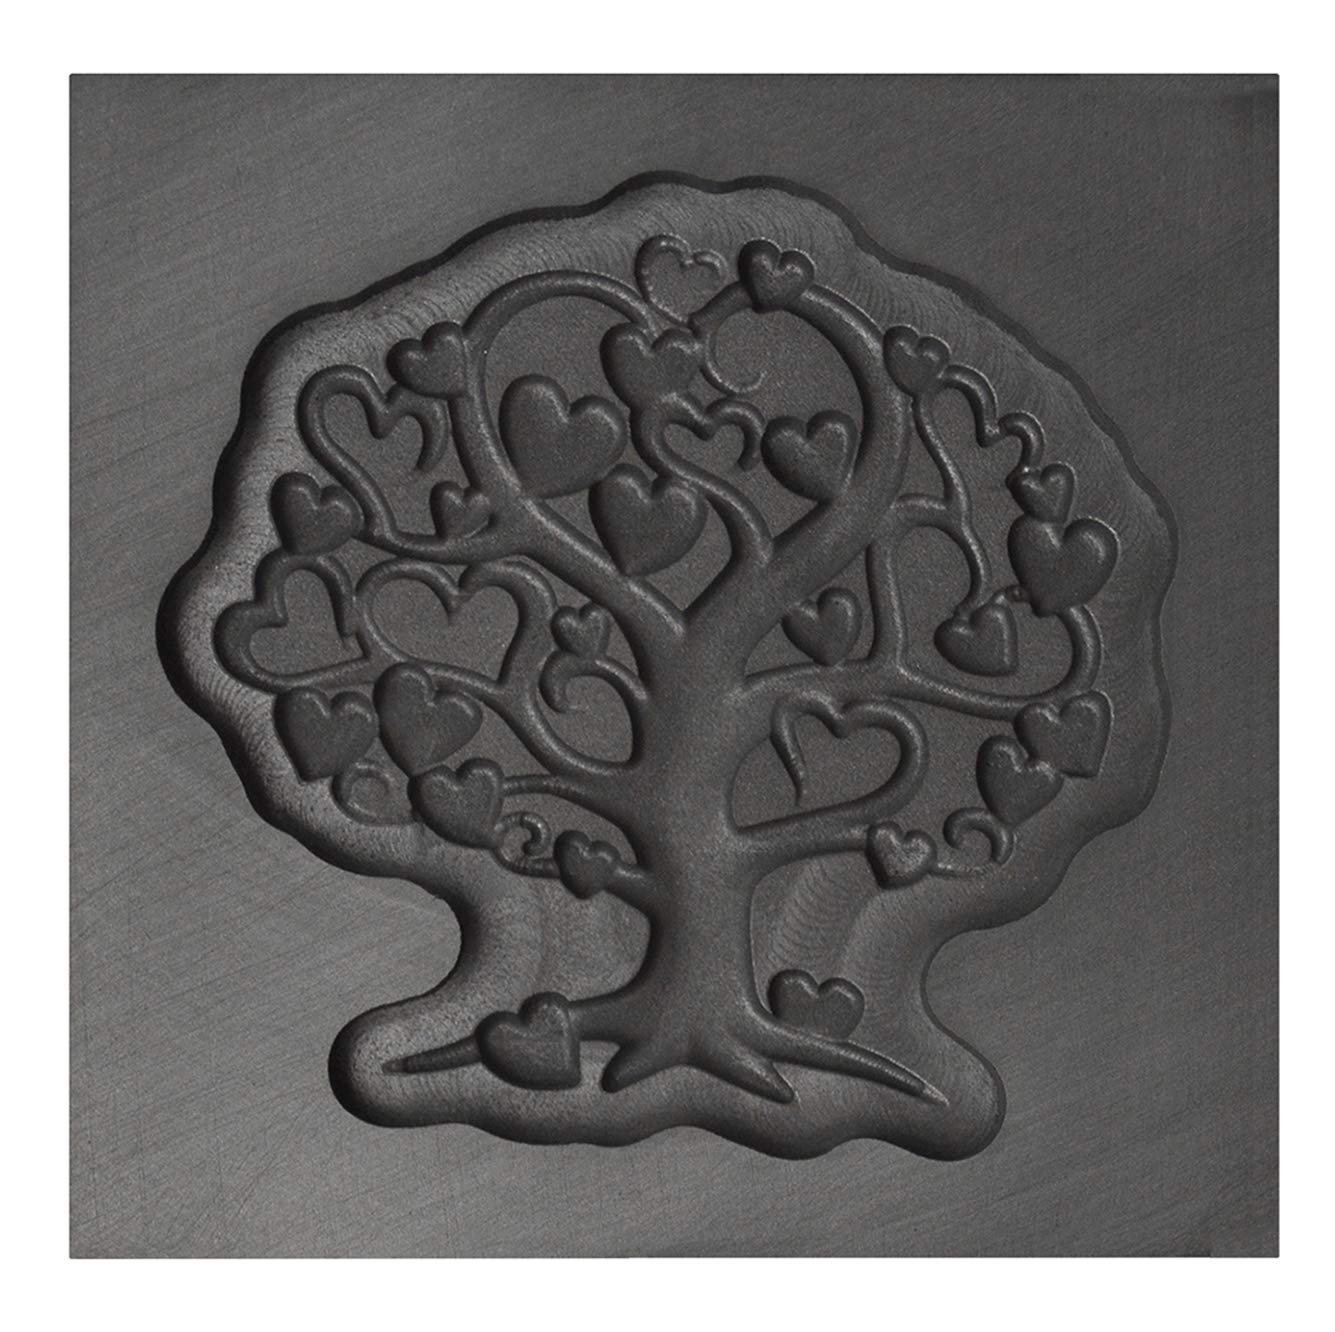 Medium Tree of Love 3D Graphite Ingot Mold for Precious Metal Casting Gold Silver Copper Melting